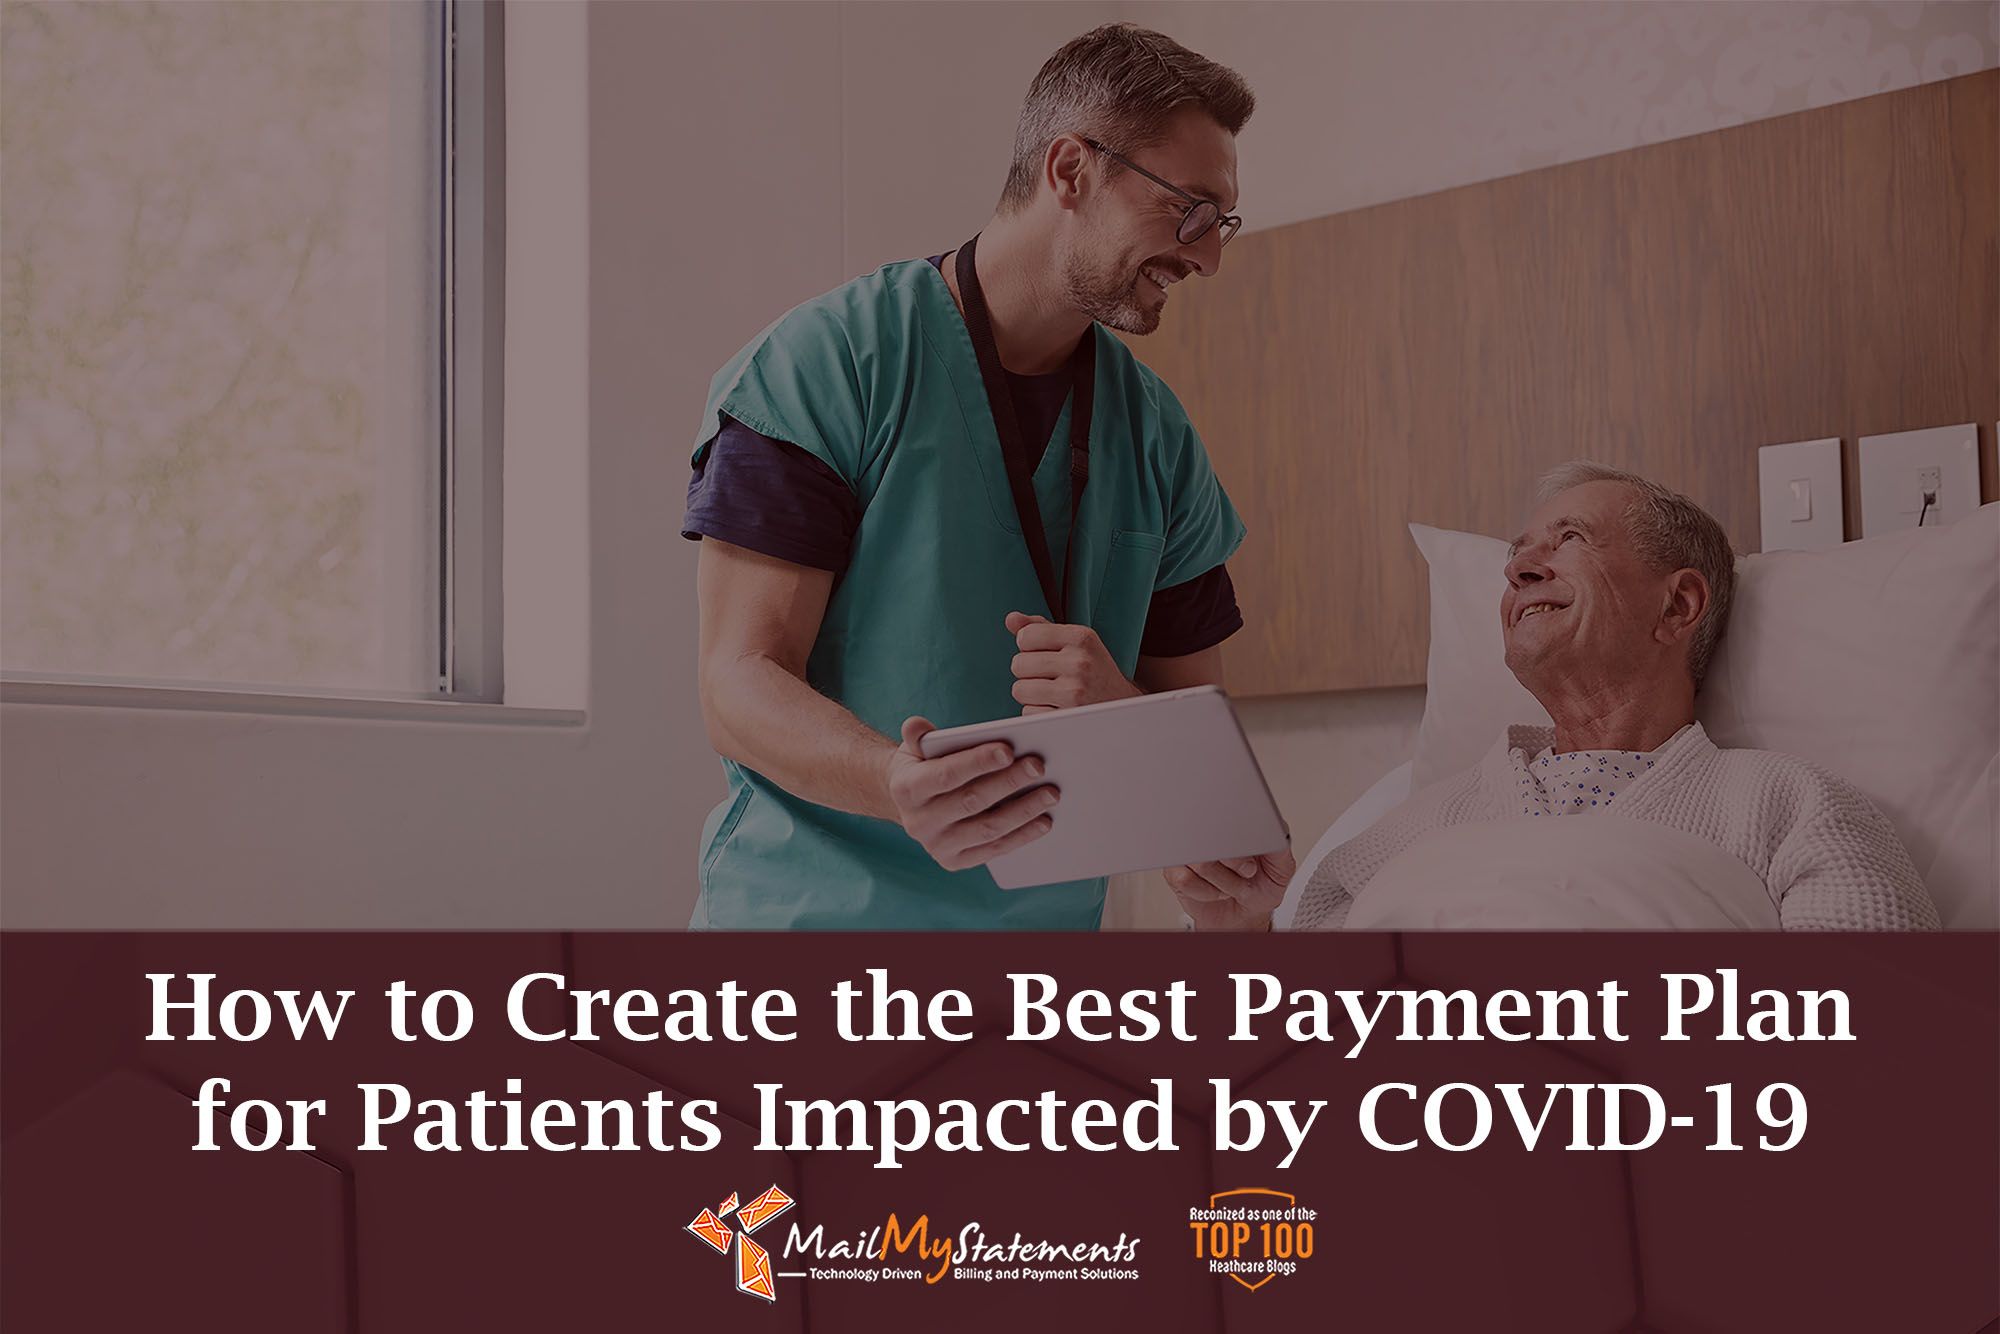 How to Create the Best Payment Plan for Patients Impacted by COVID-19